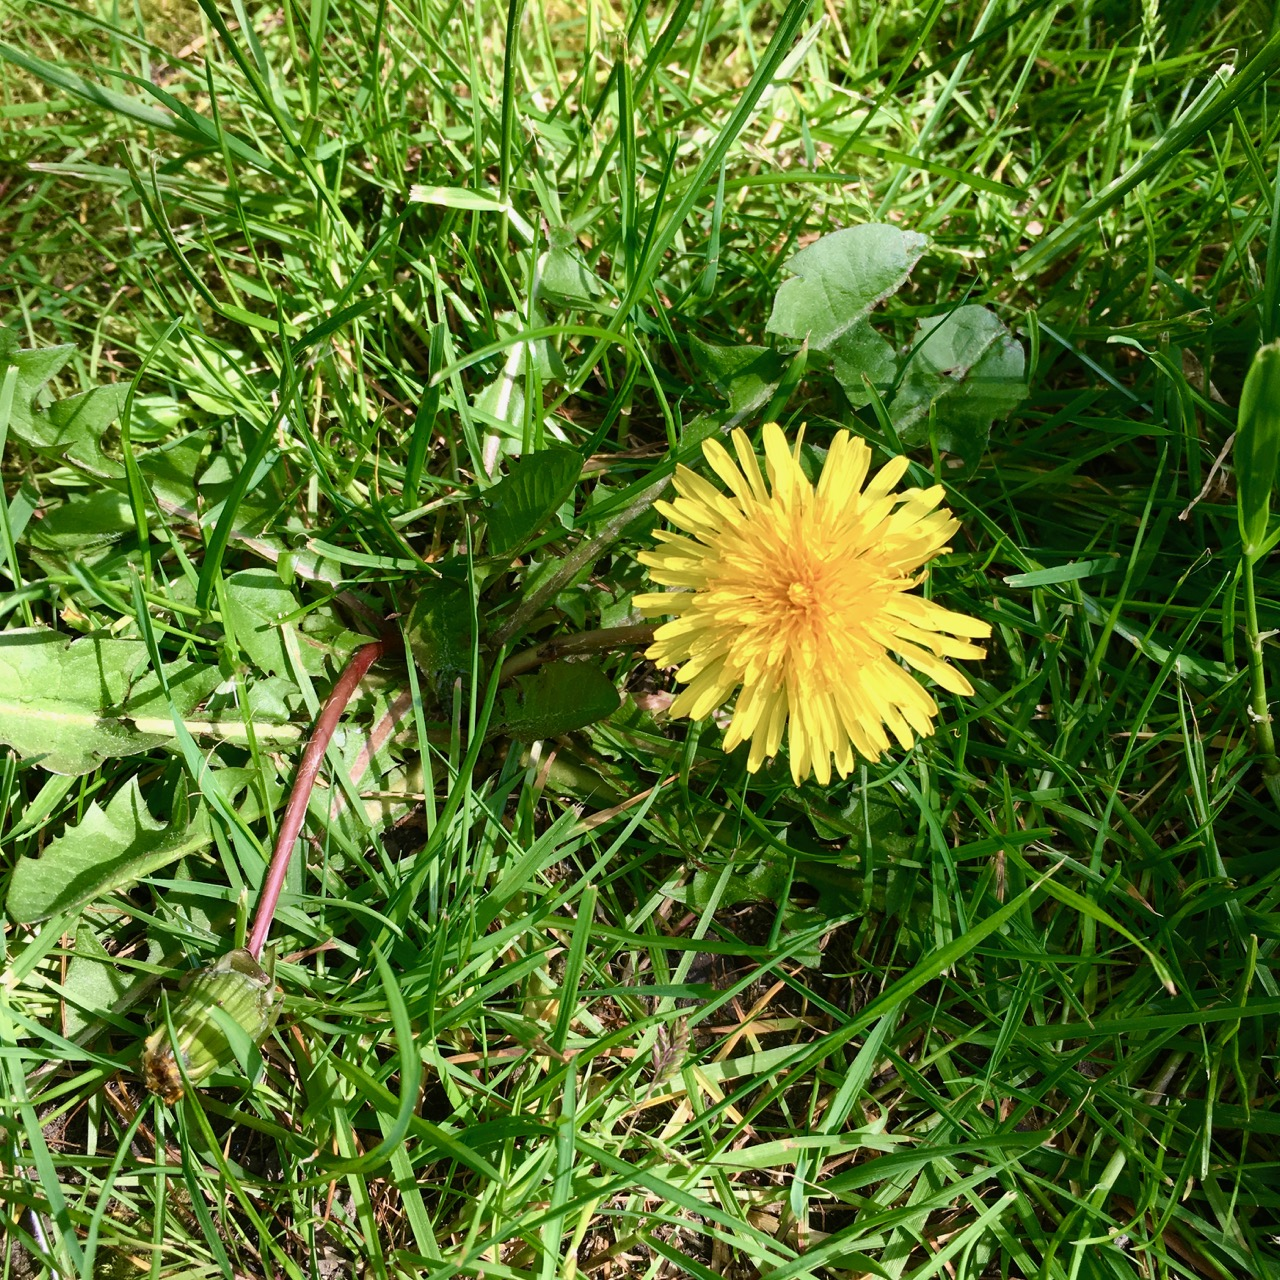 A dandelion, but at least there are no bears